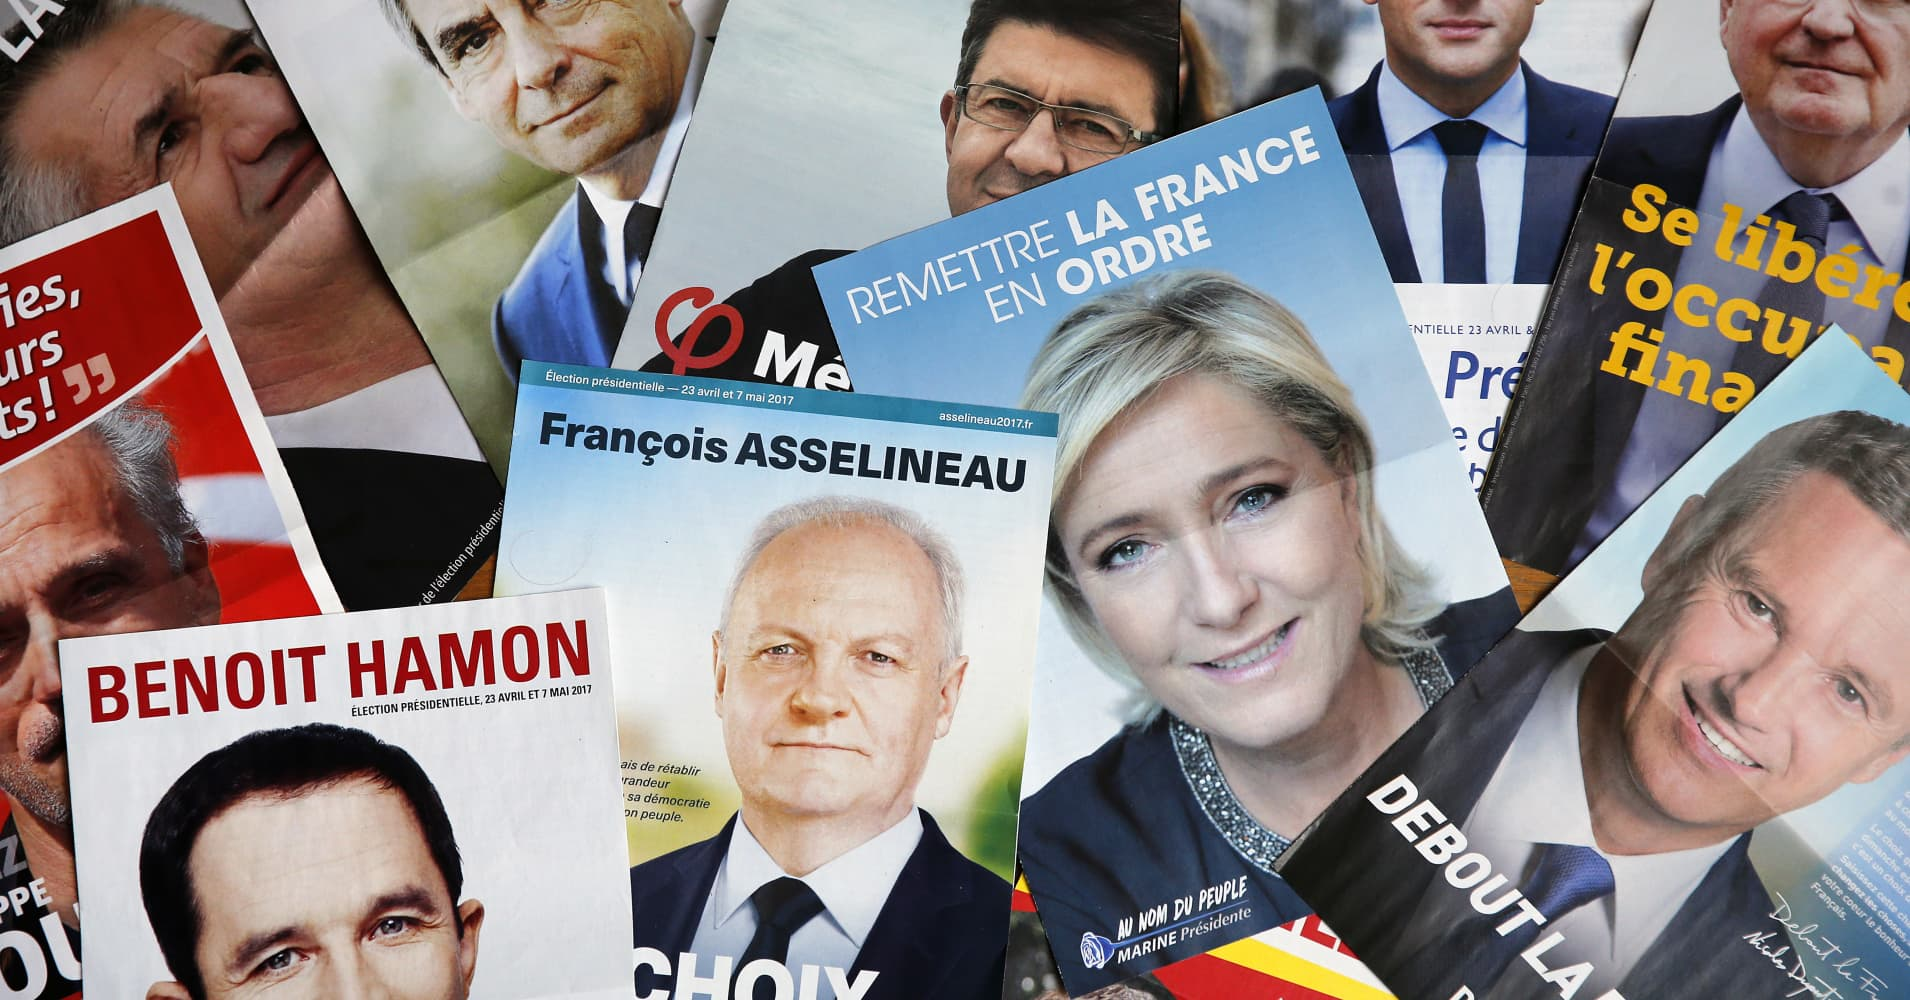 Here's all you need to know about the French election